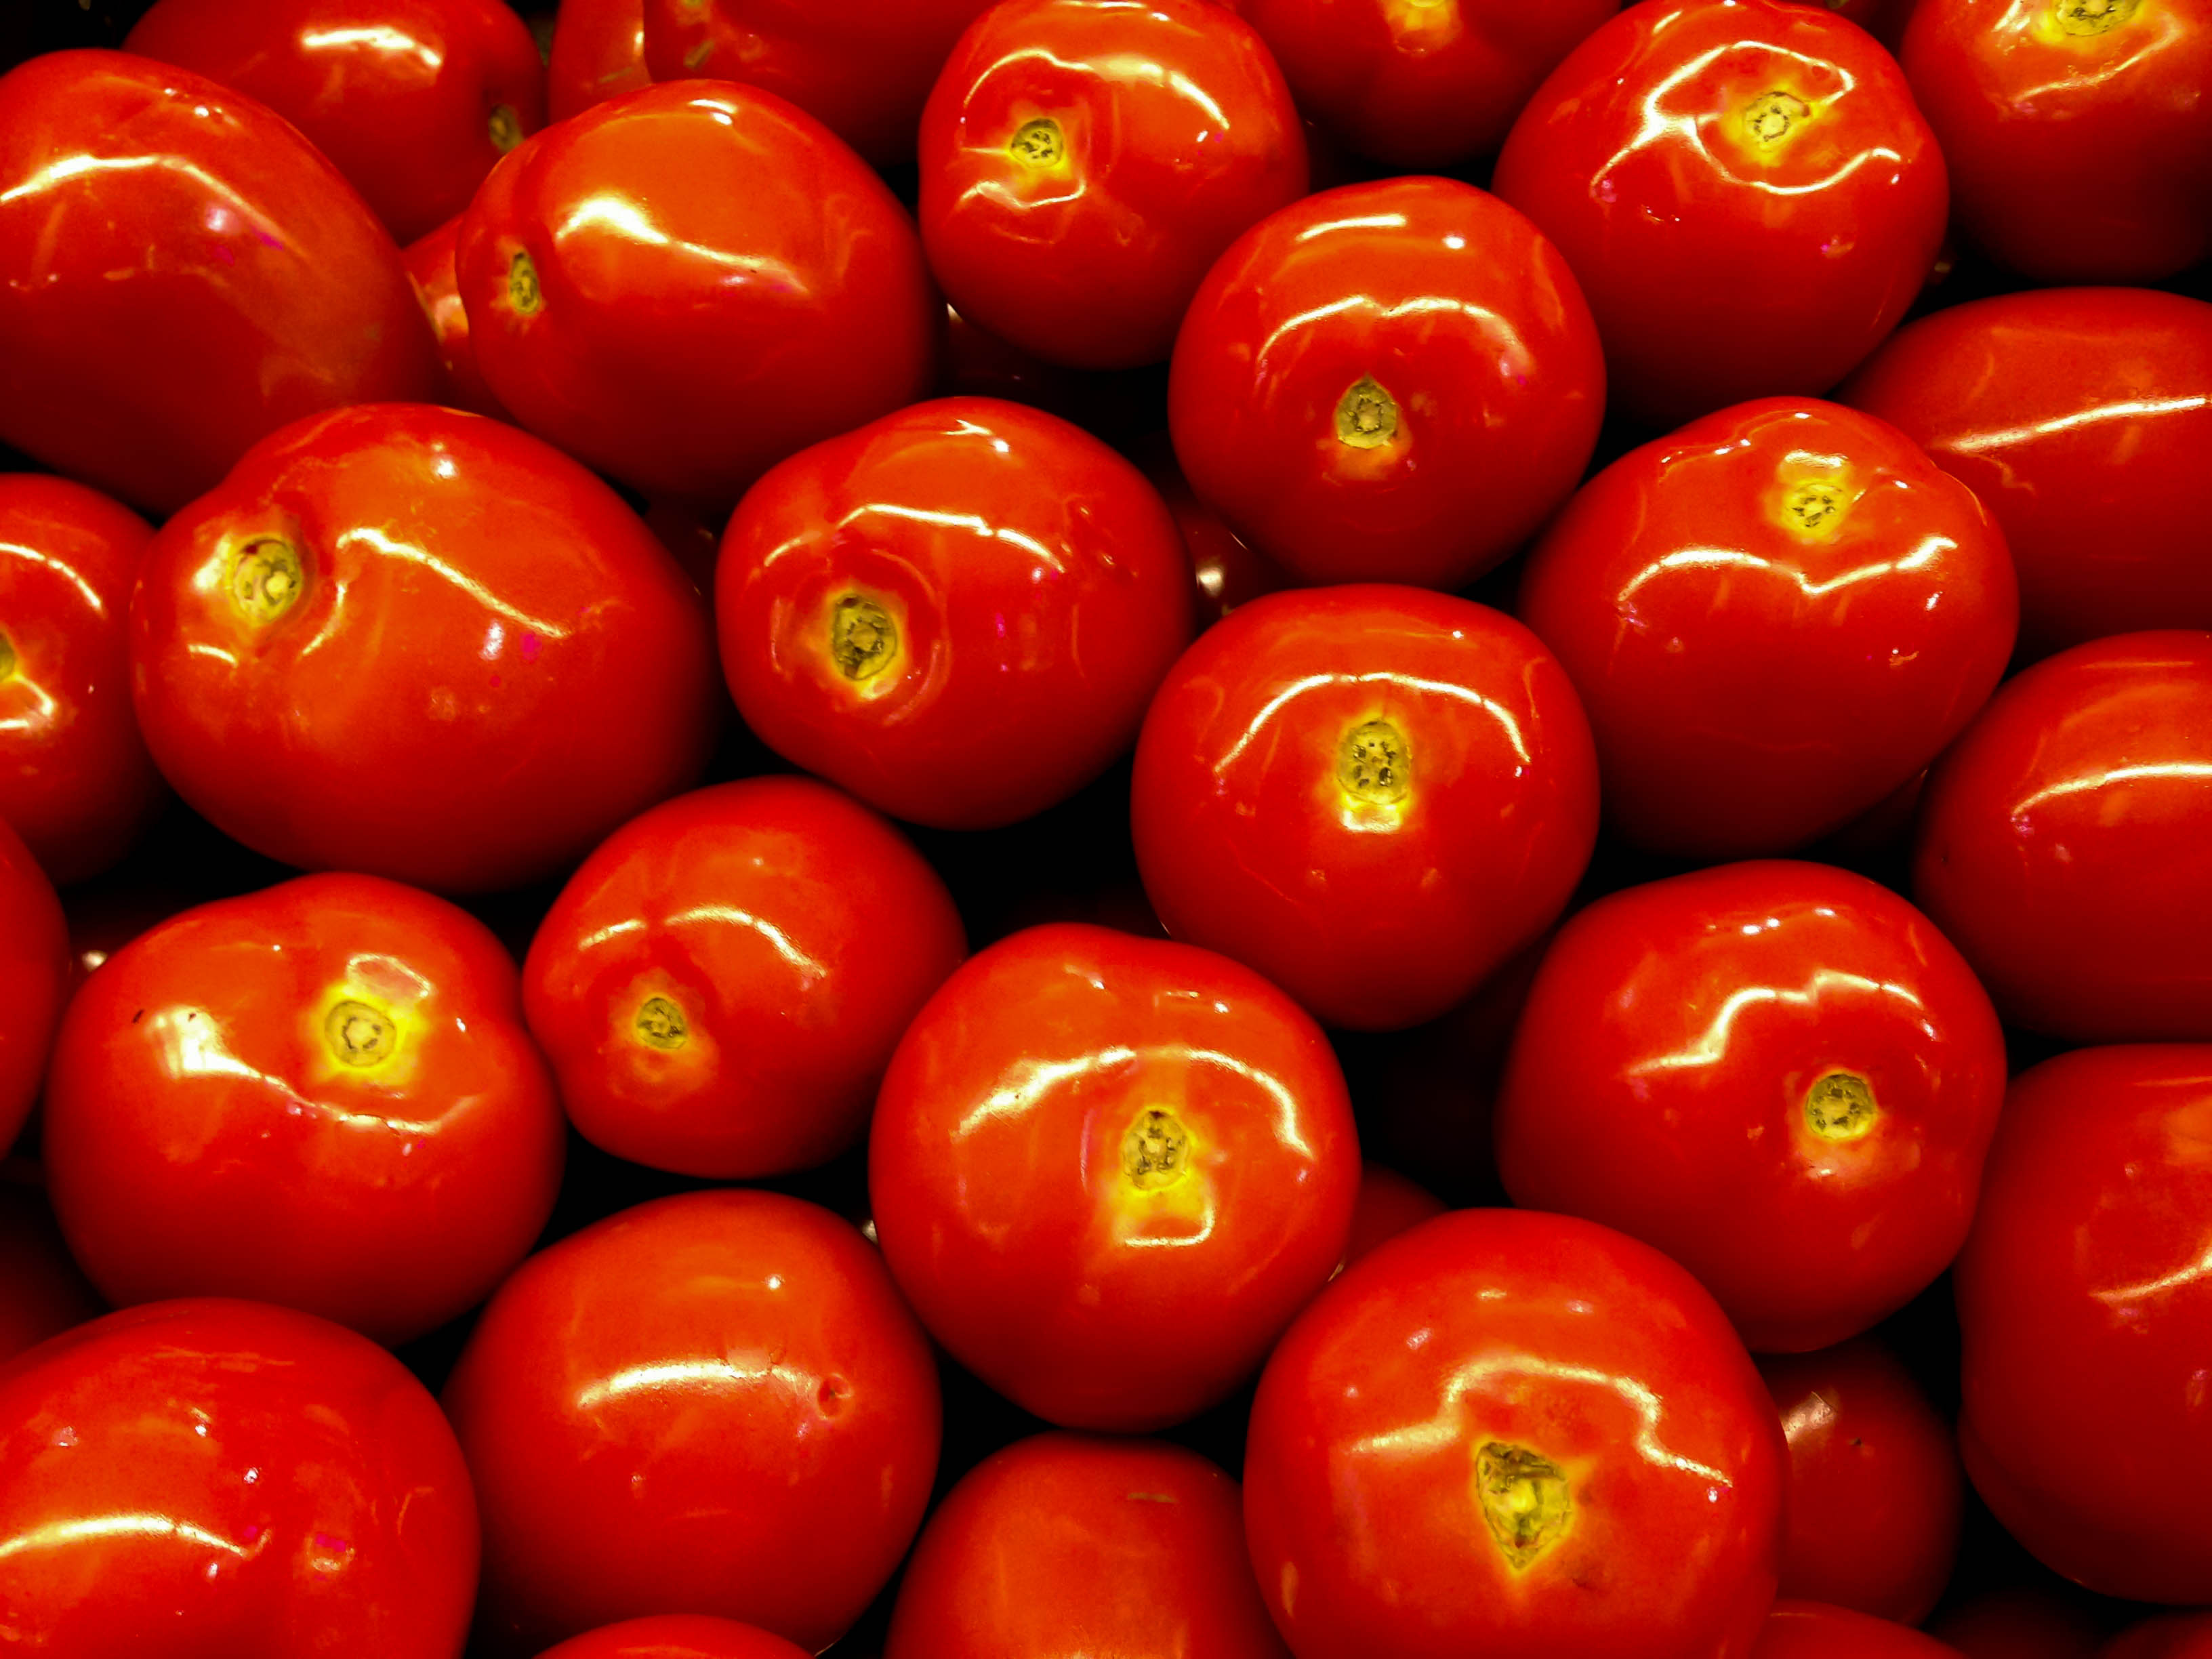 Tomatoes, Wood, Red, Kitchen, Knife, HQ Photo